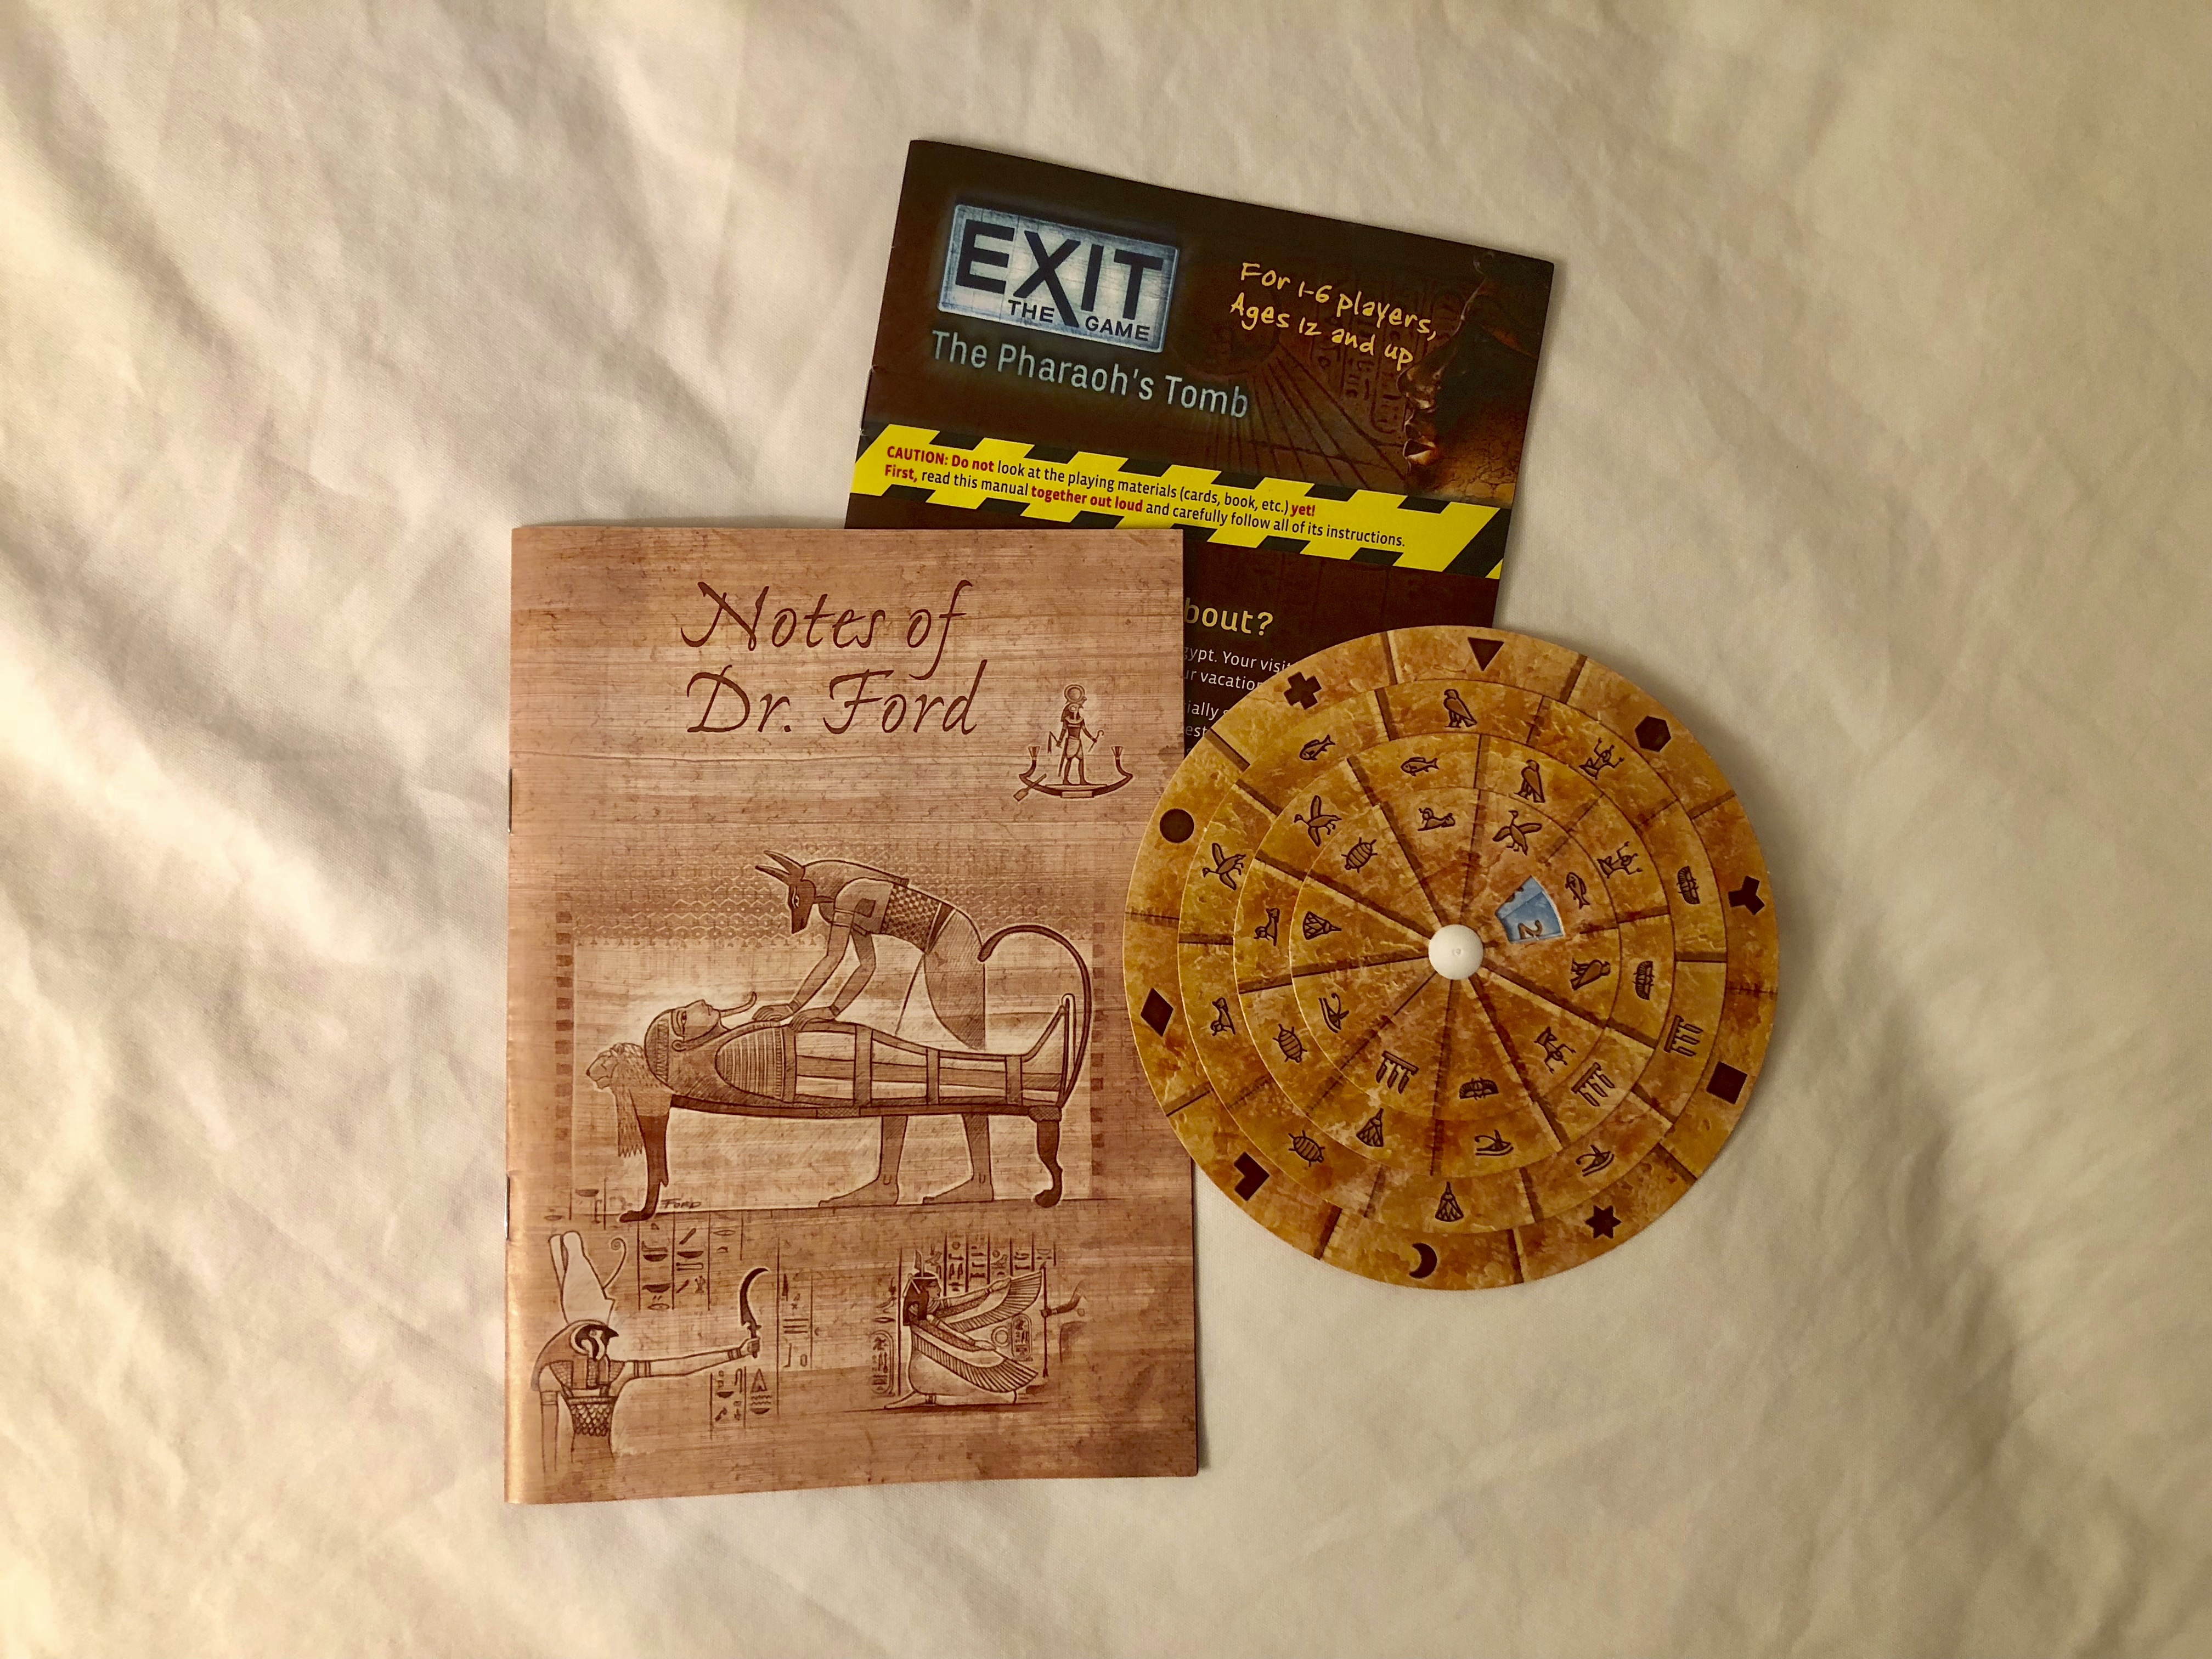 Game Review: Exit The Pharaoh's Tomb - Nile Scribes